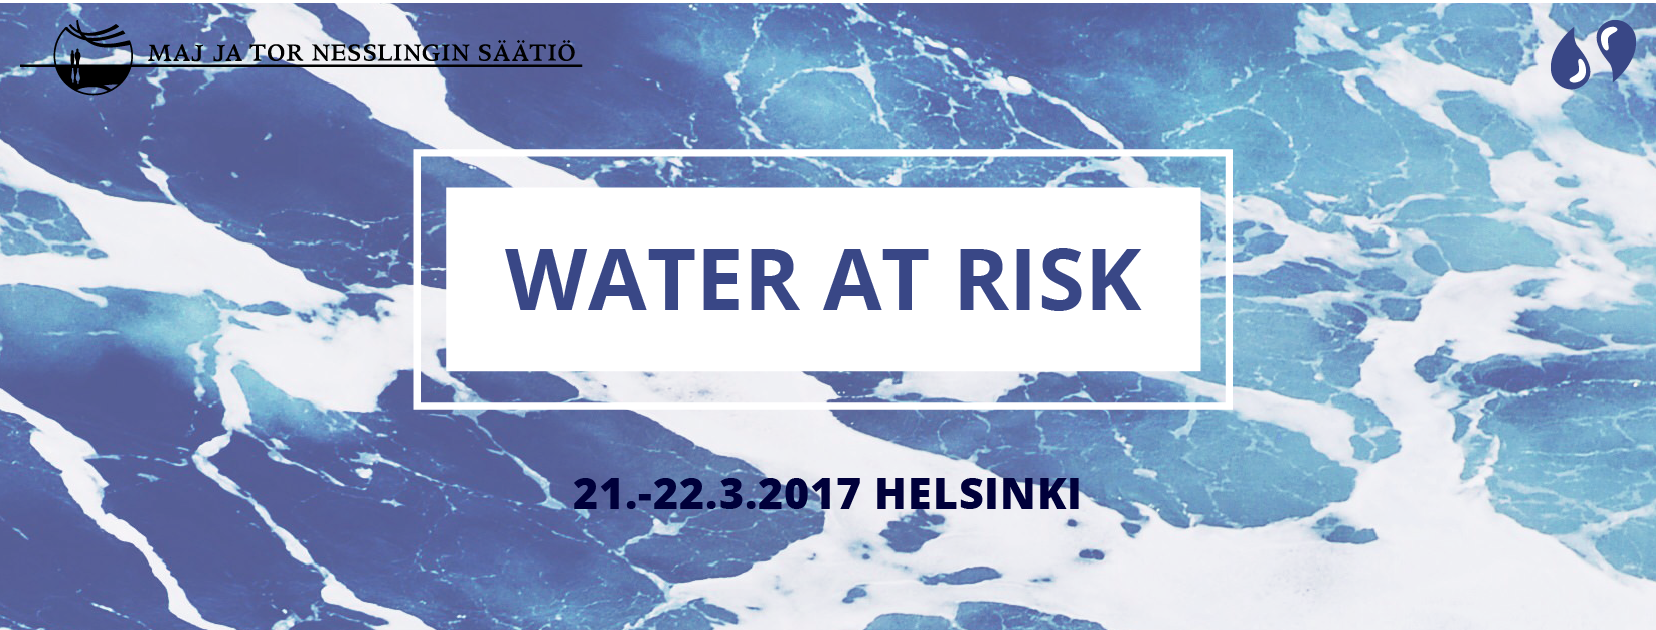 wateratrisk_fb_cover